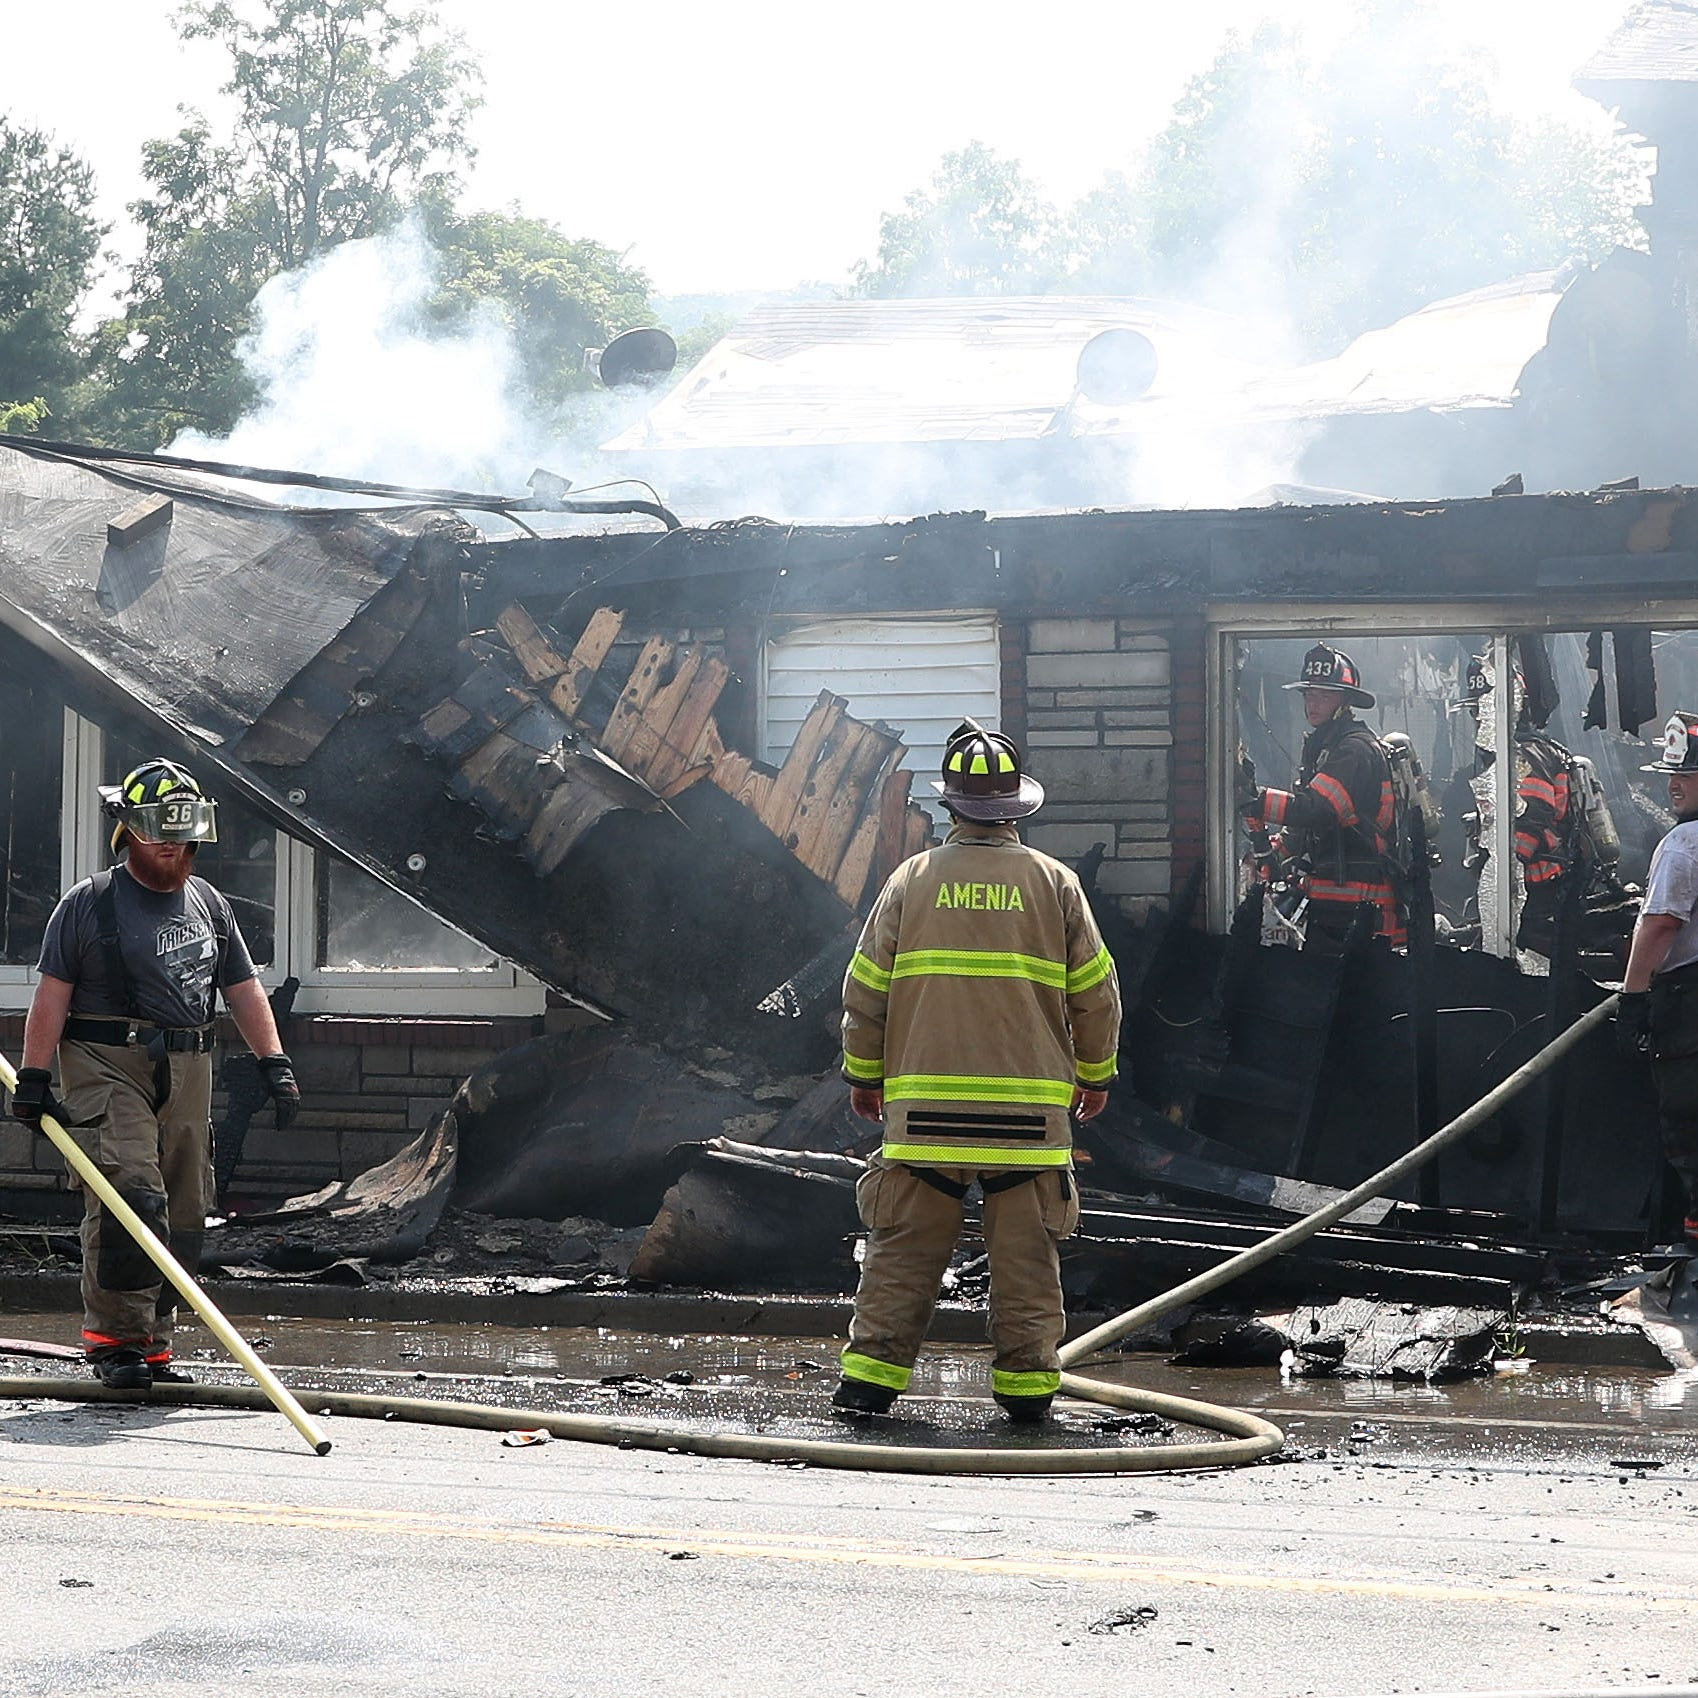 Firefighters from New York and Connecticut fire departments assist Dover firefighters in battling a fire that destroyed a building on Route 22 in Dover on Friday. The fire caused Route 22 to be shut in both directions.